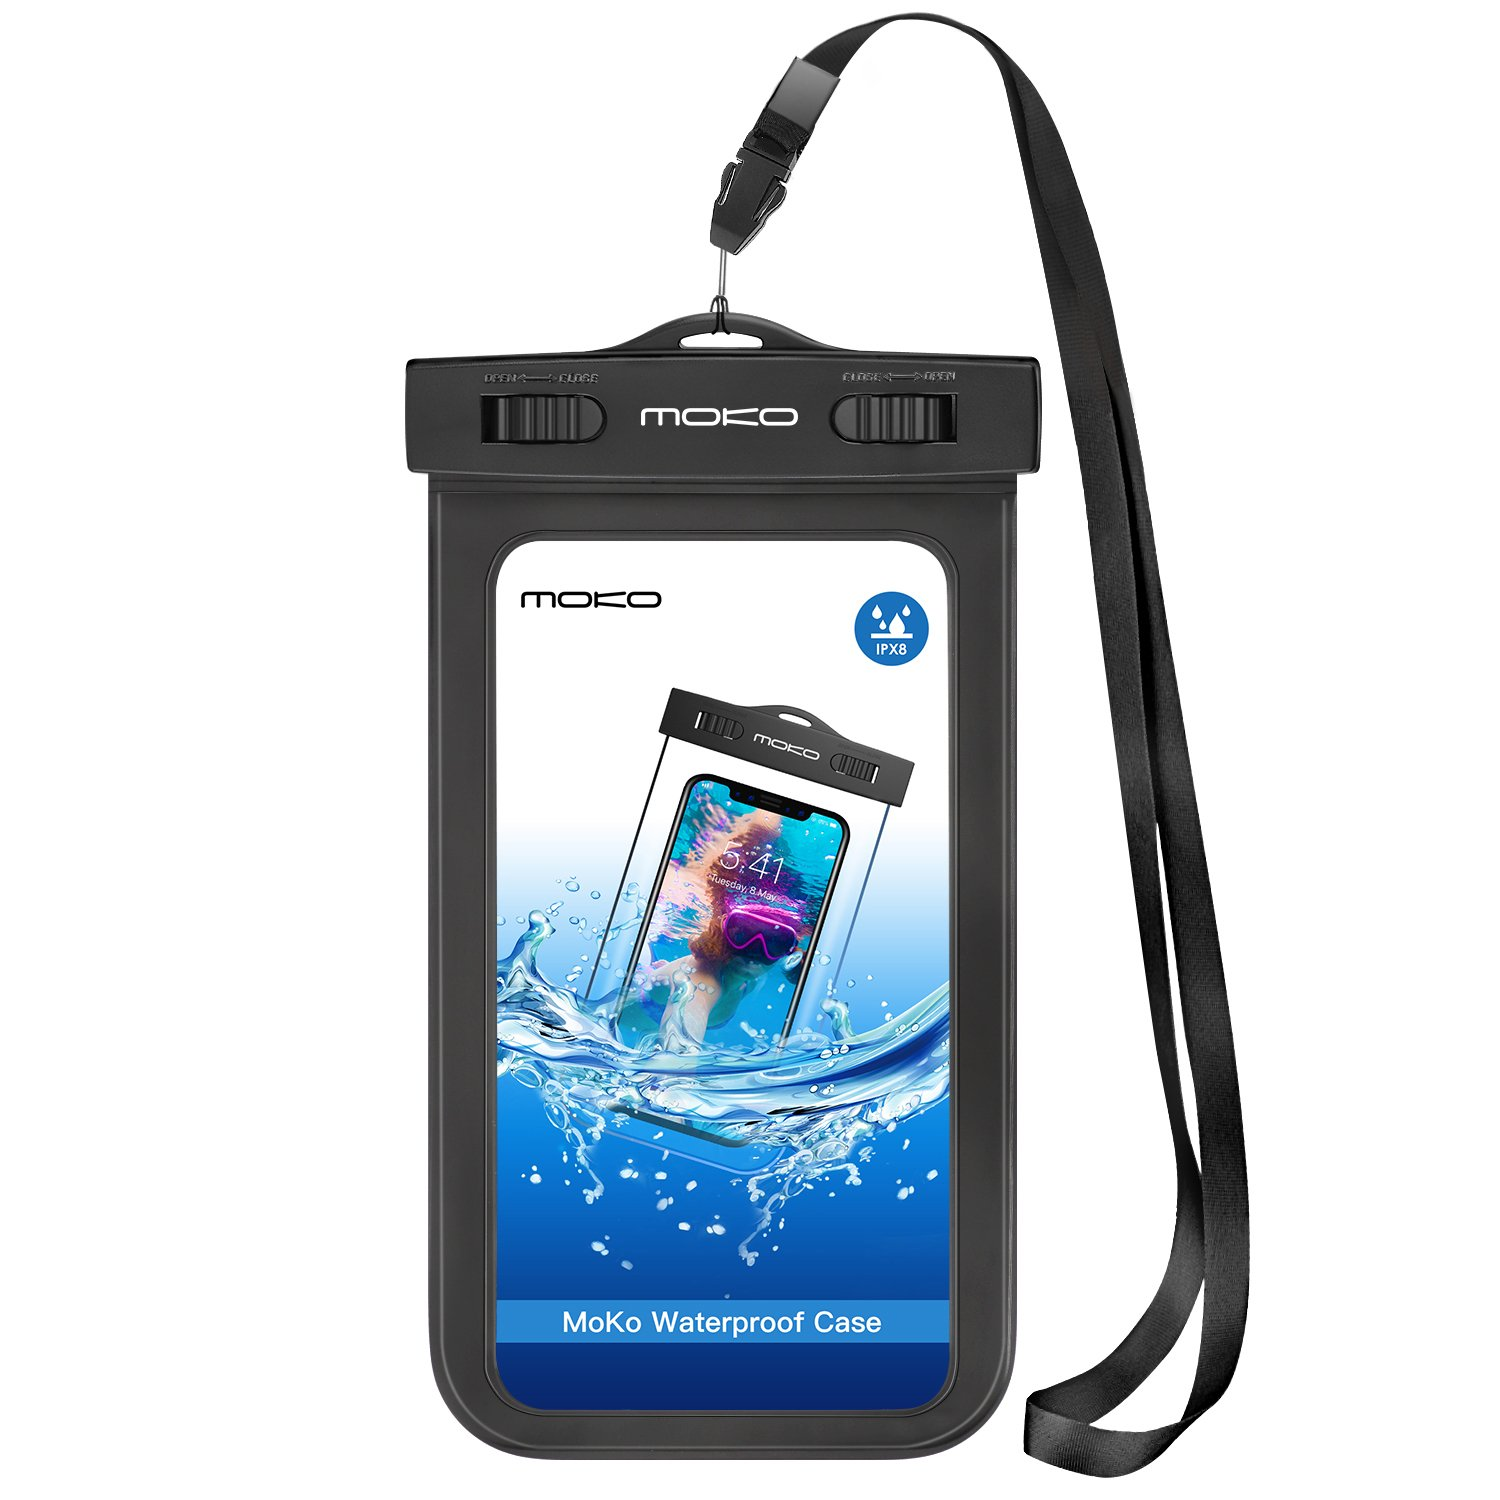 MoKo Waterproof Phone Pouch, Underwater Waterproof Cellphone Case Dry Bag with Lanyard Armband Compatible with iPhone X/Xs/Xr/Xs Max, 8/7/6s Plus, Samsung Galaxy S10/S9/S8 Plus, S10 e, S7 Edge, Black by MoKo (Image #1)